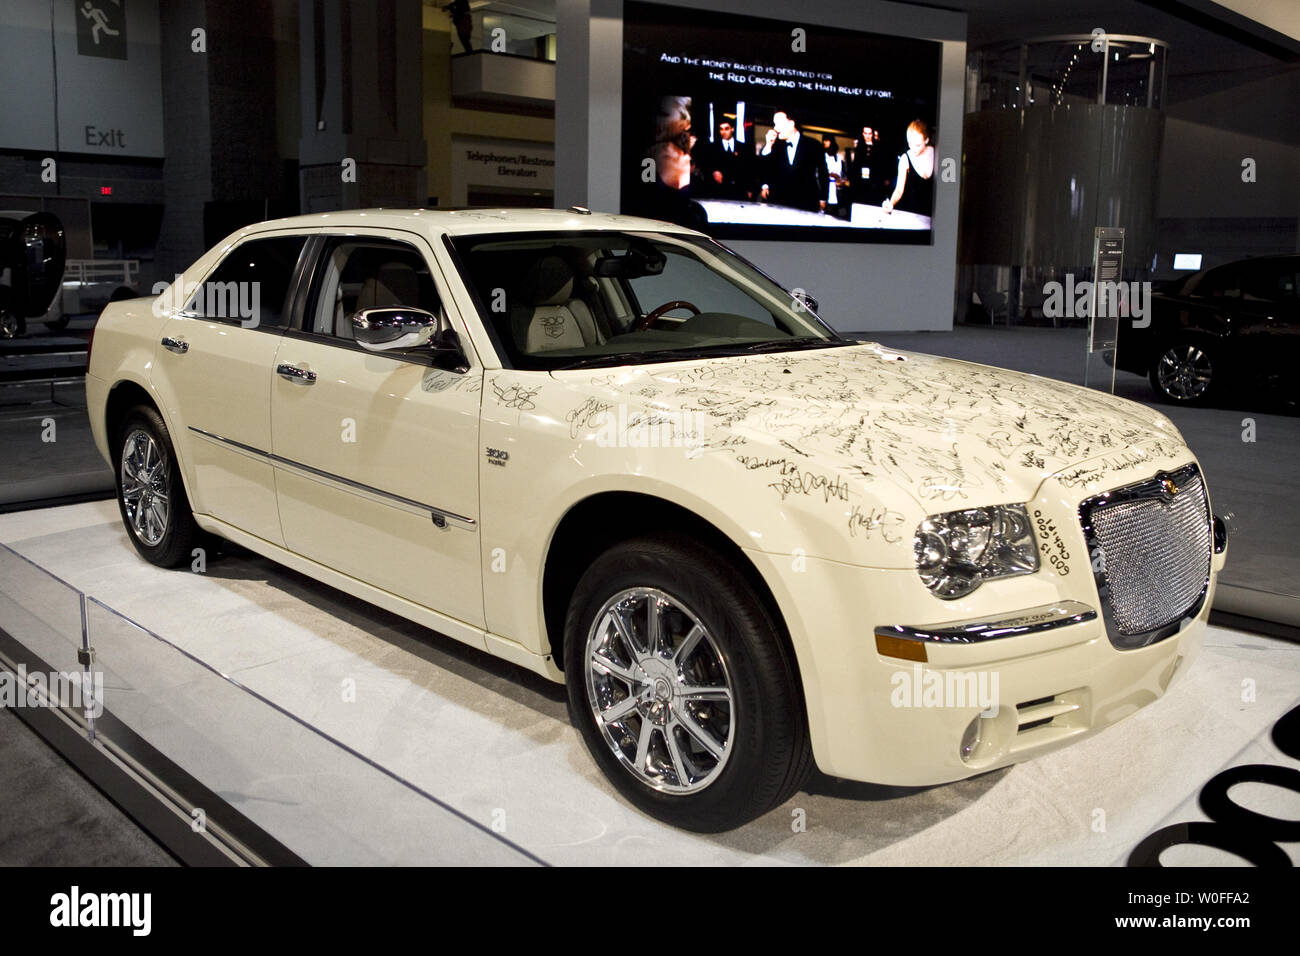 hight resolution of the haiti special edition chrysler 300c is showcased at the washington auto show in washington on